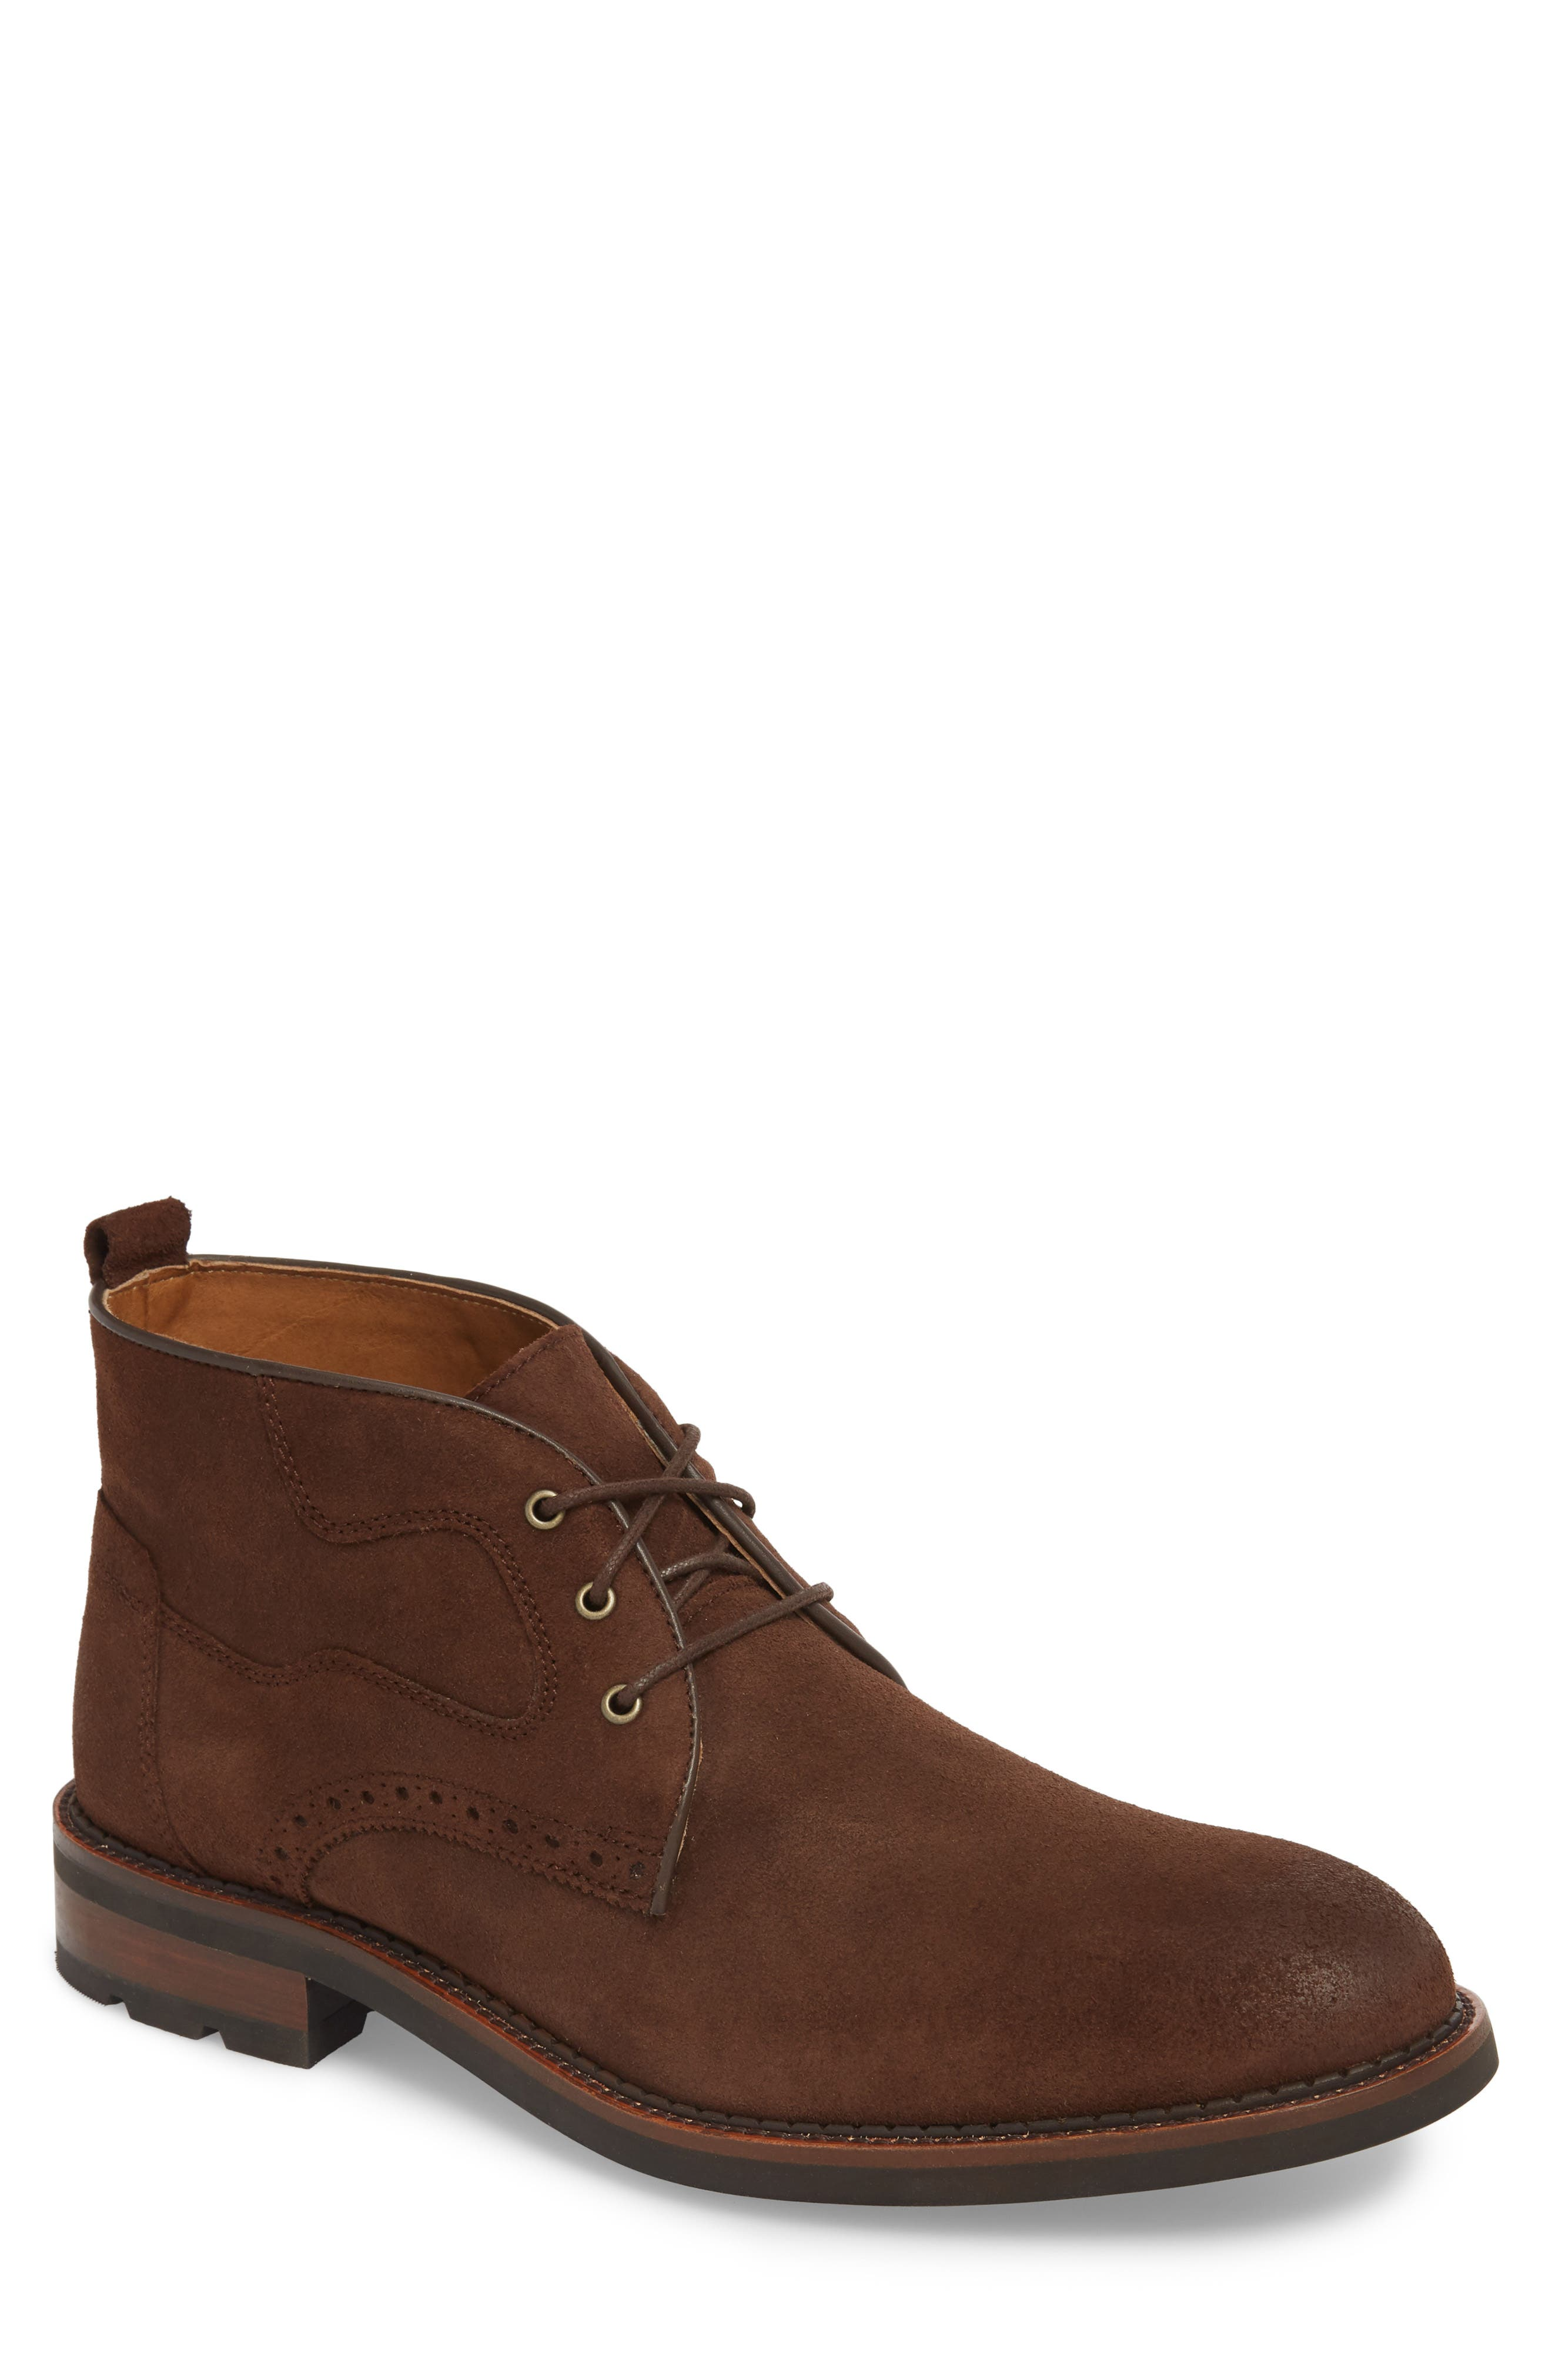 Fullerton Chukka Boot,                         Main,                         color, DARK BROWN